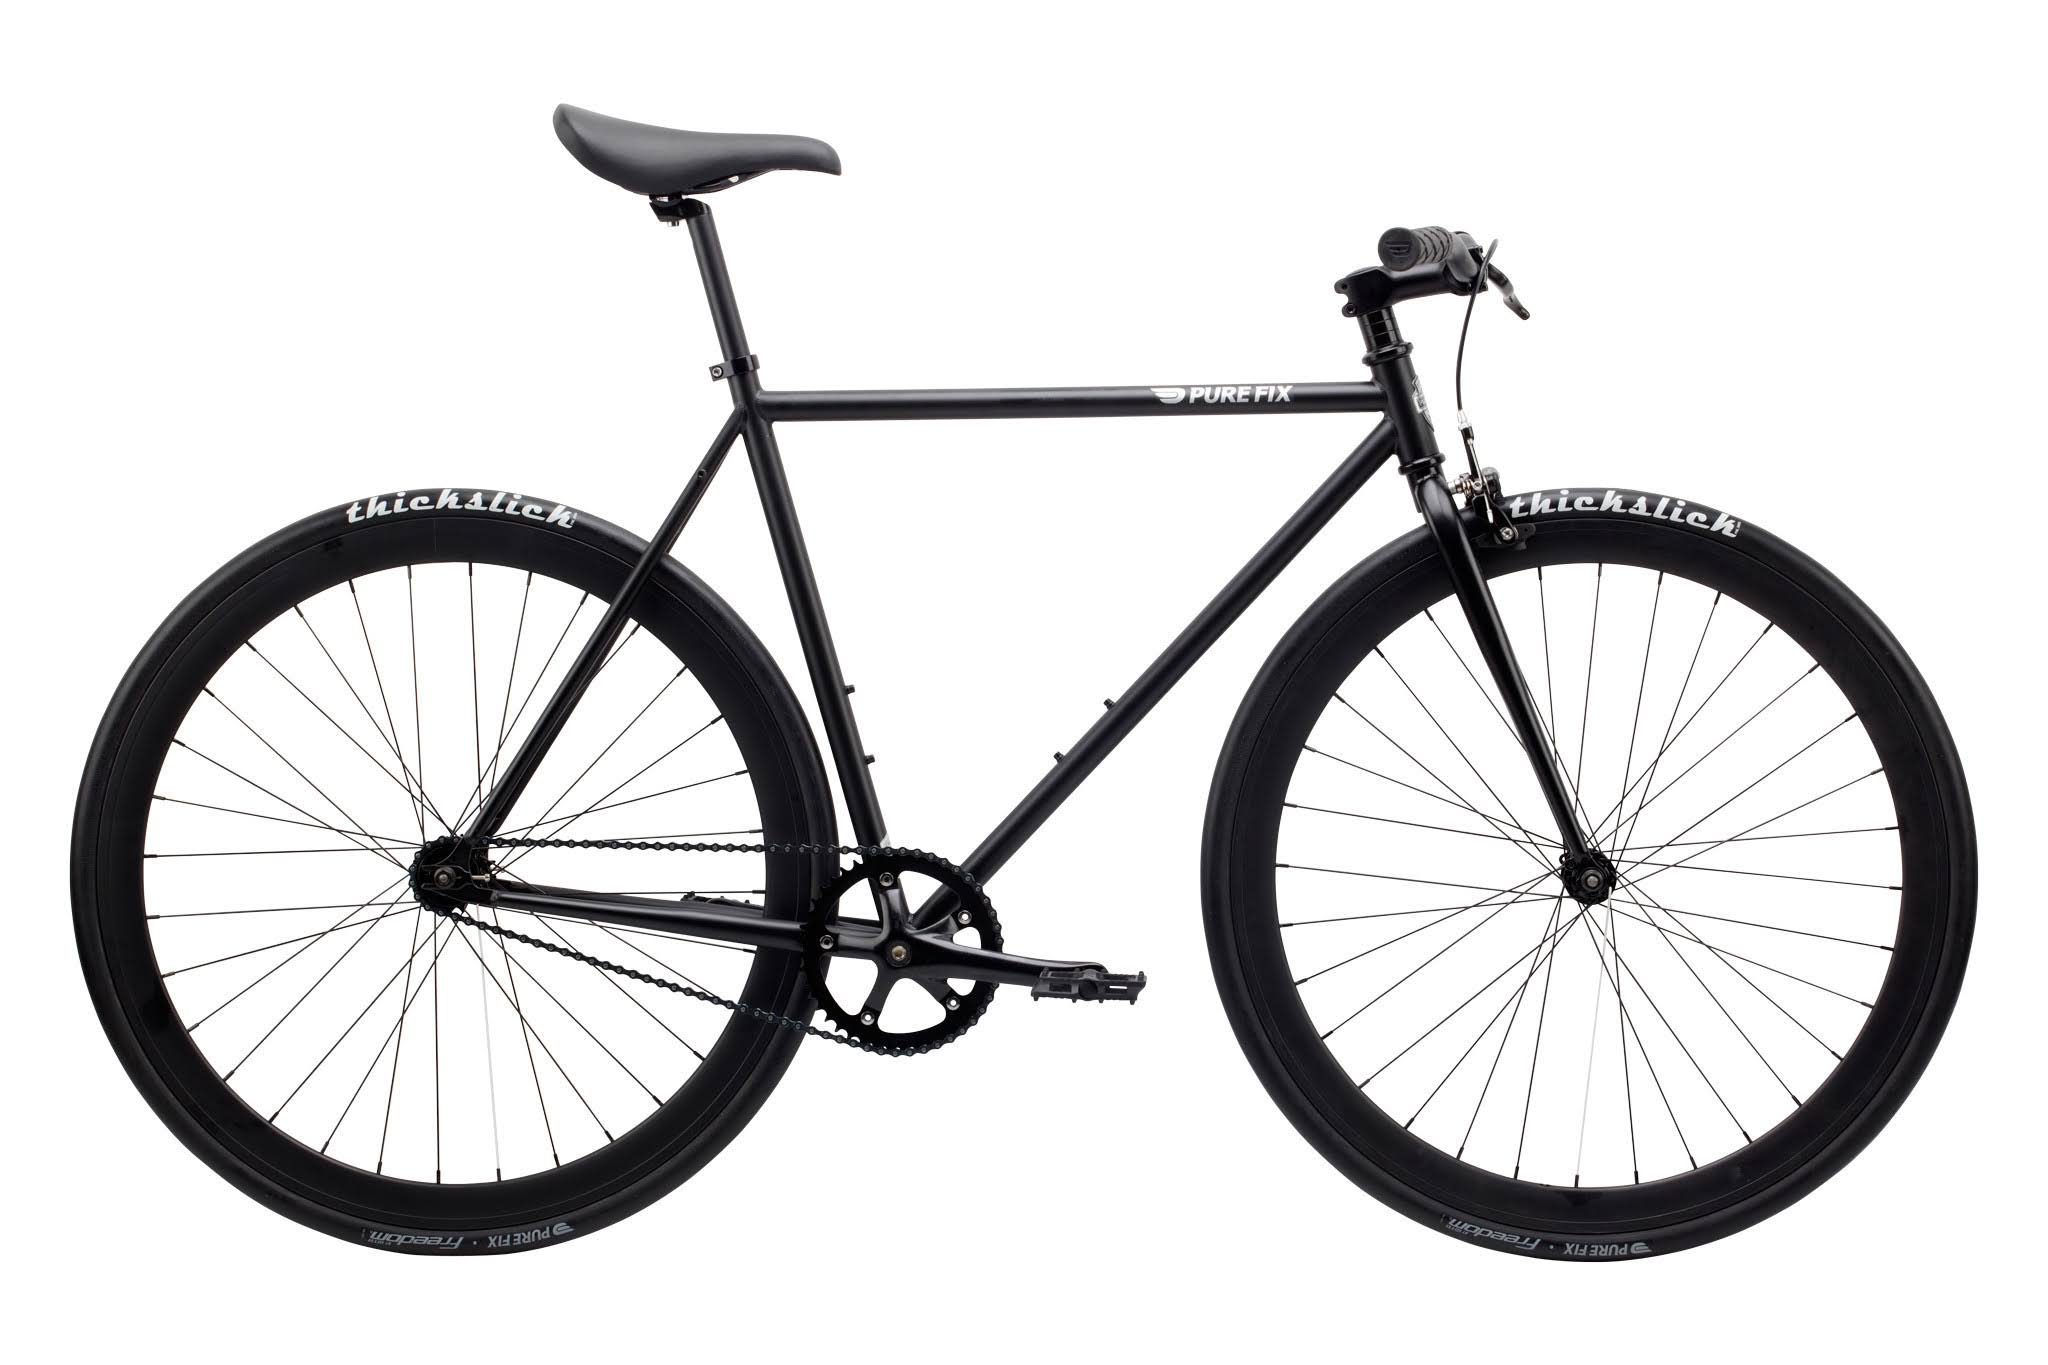 Pure Fix Original Fixed Gear Single Speed Fixie Bike - Matte Black